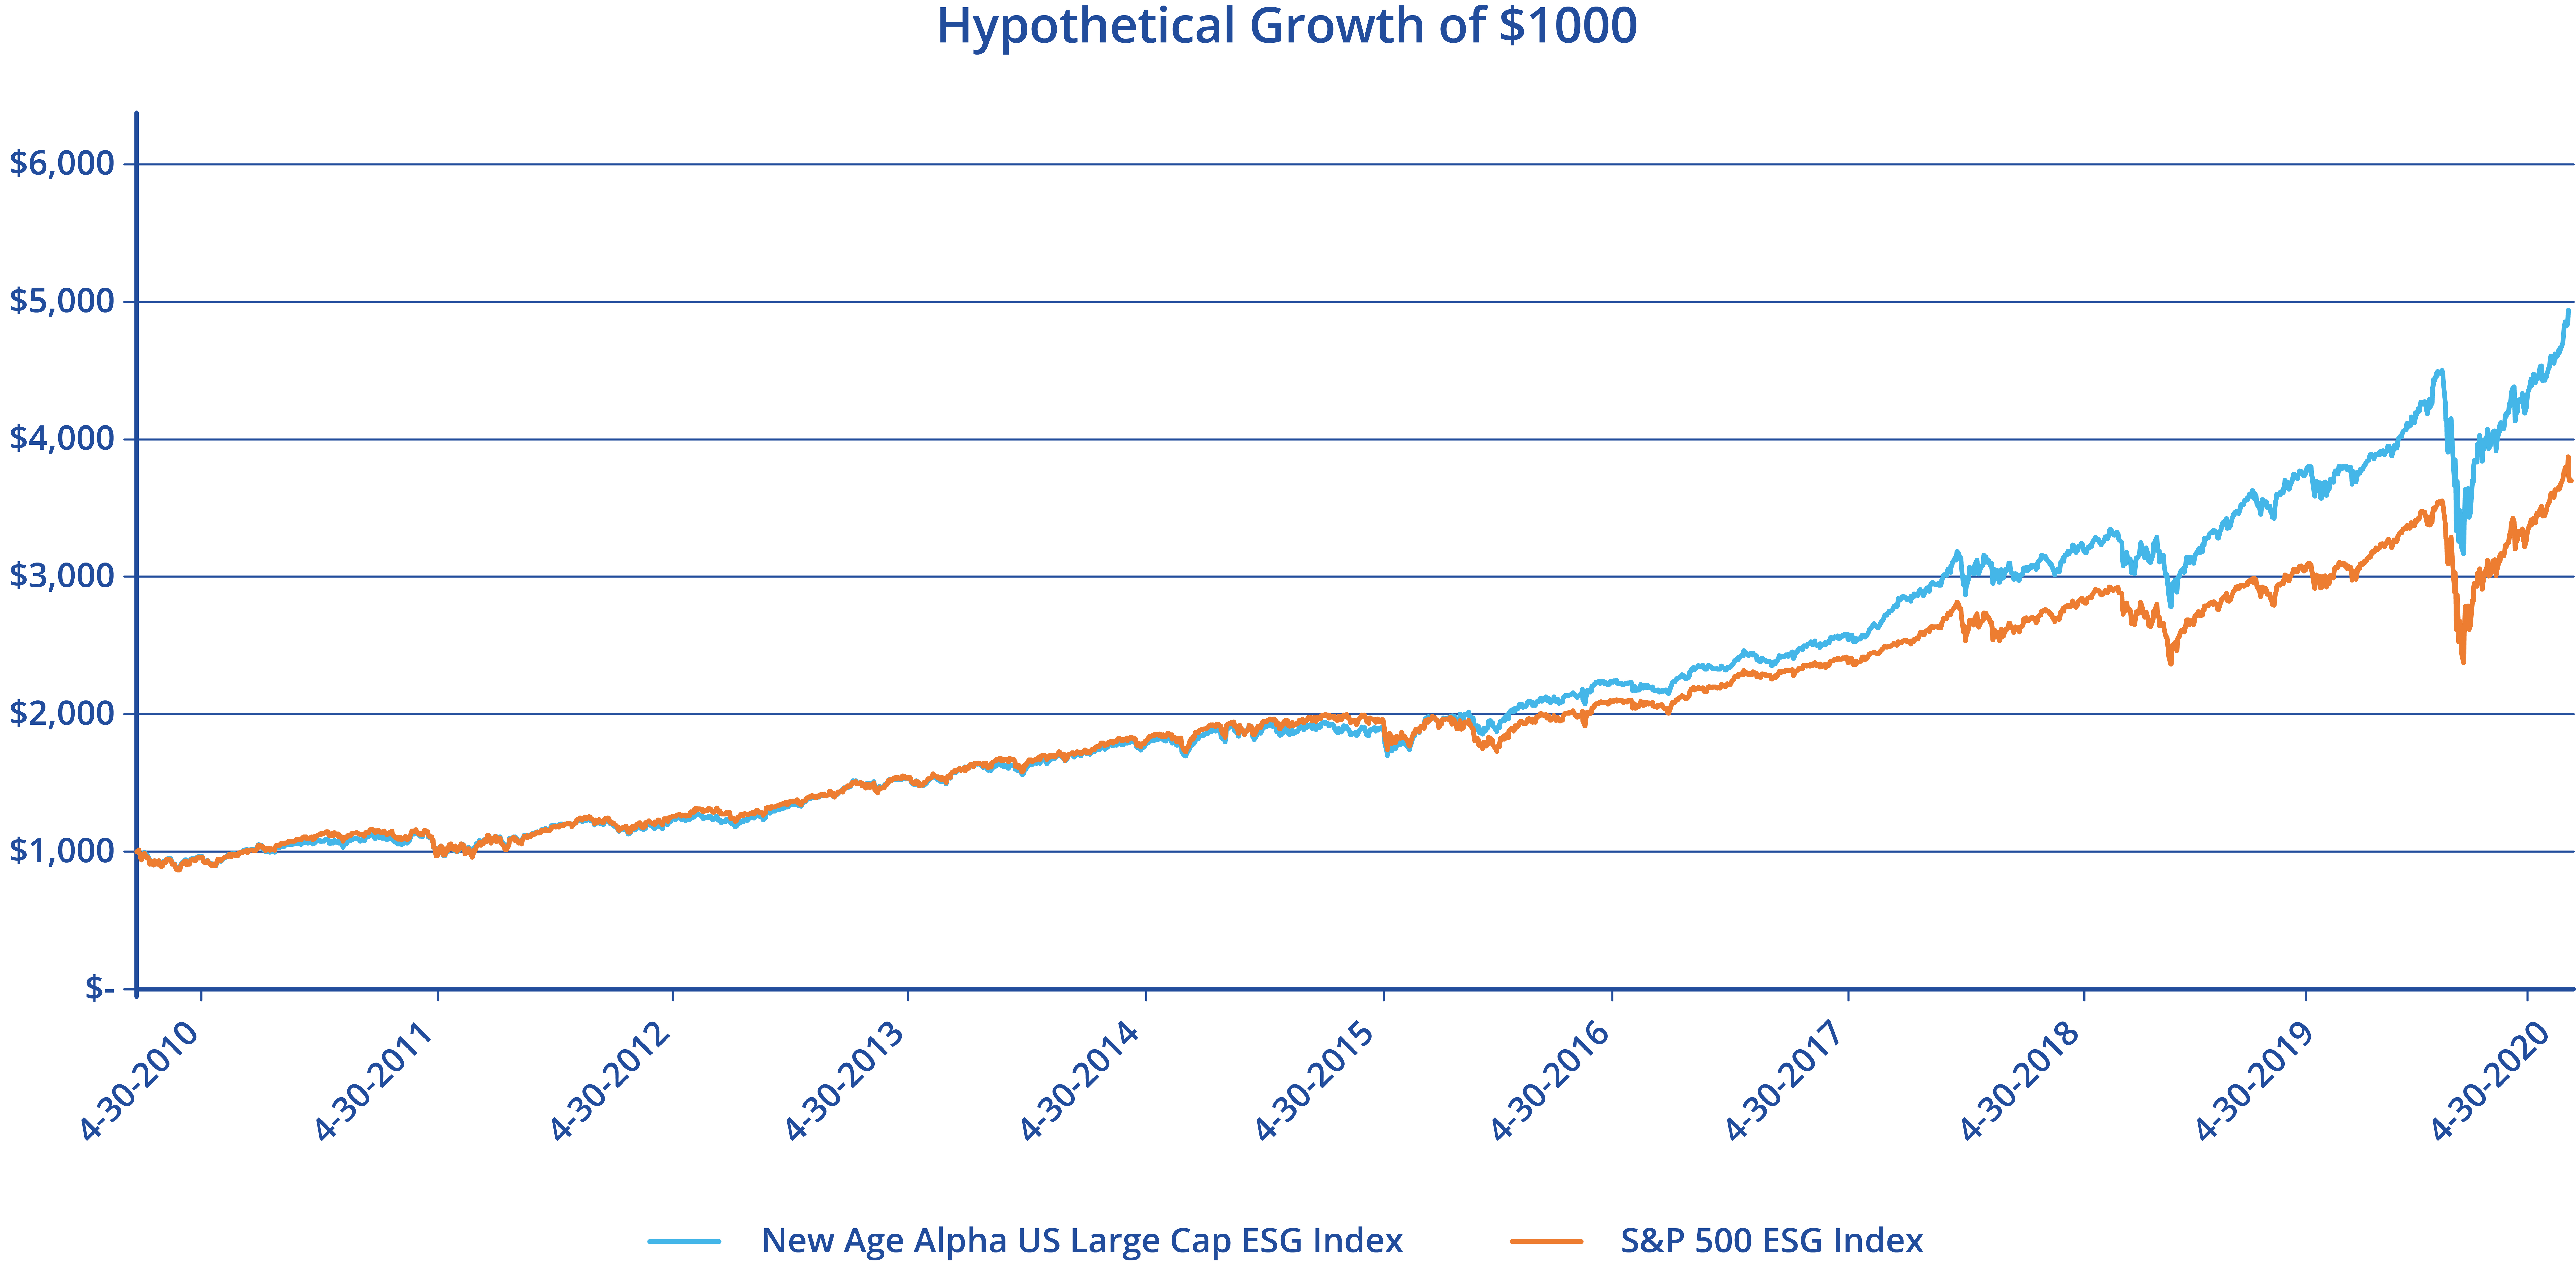 Hypothetical Growth of $1000